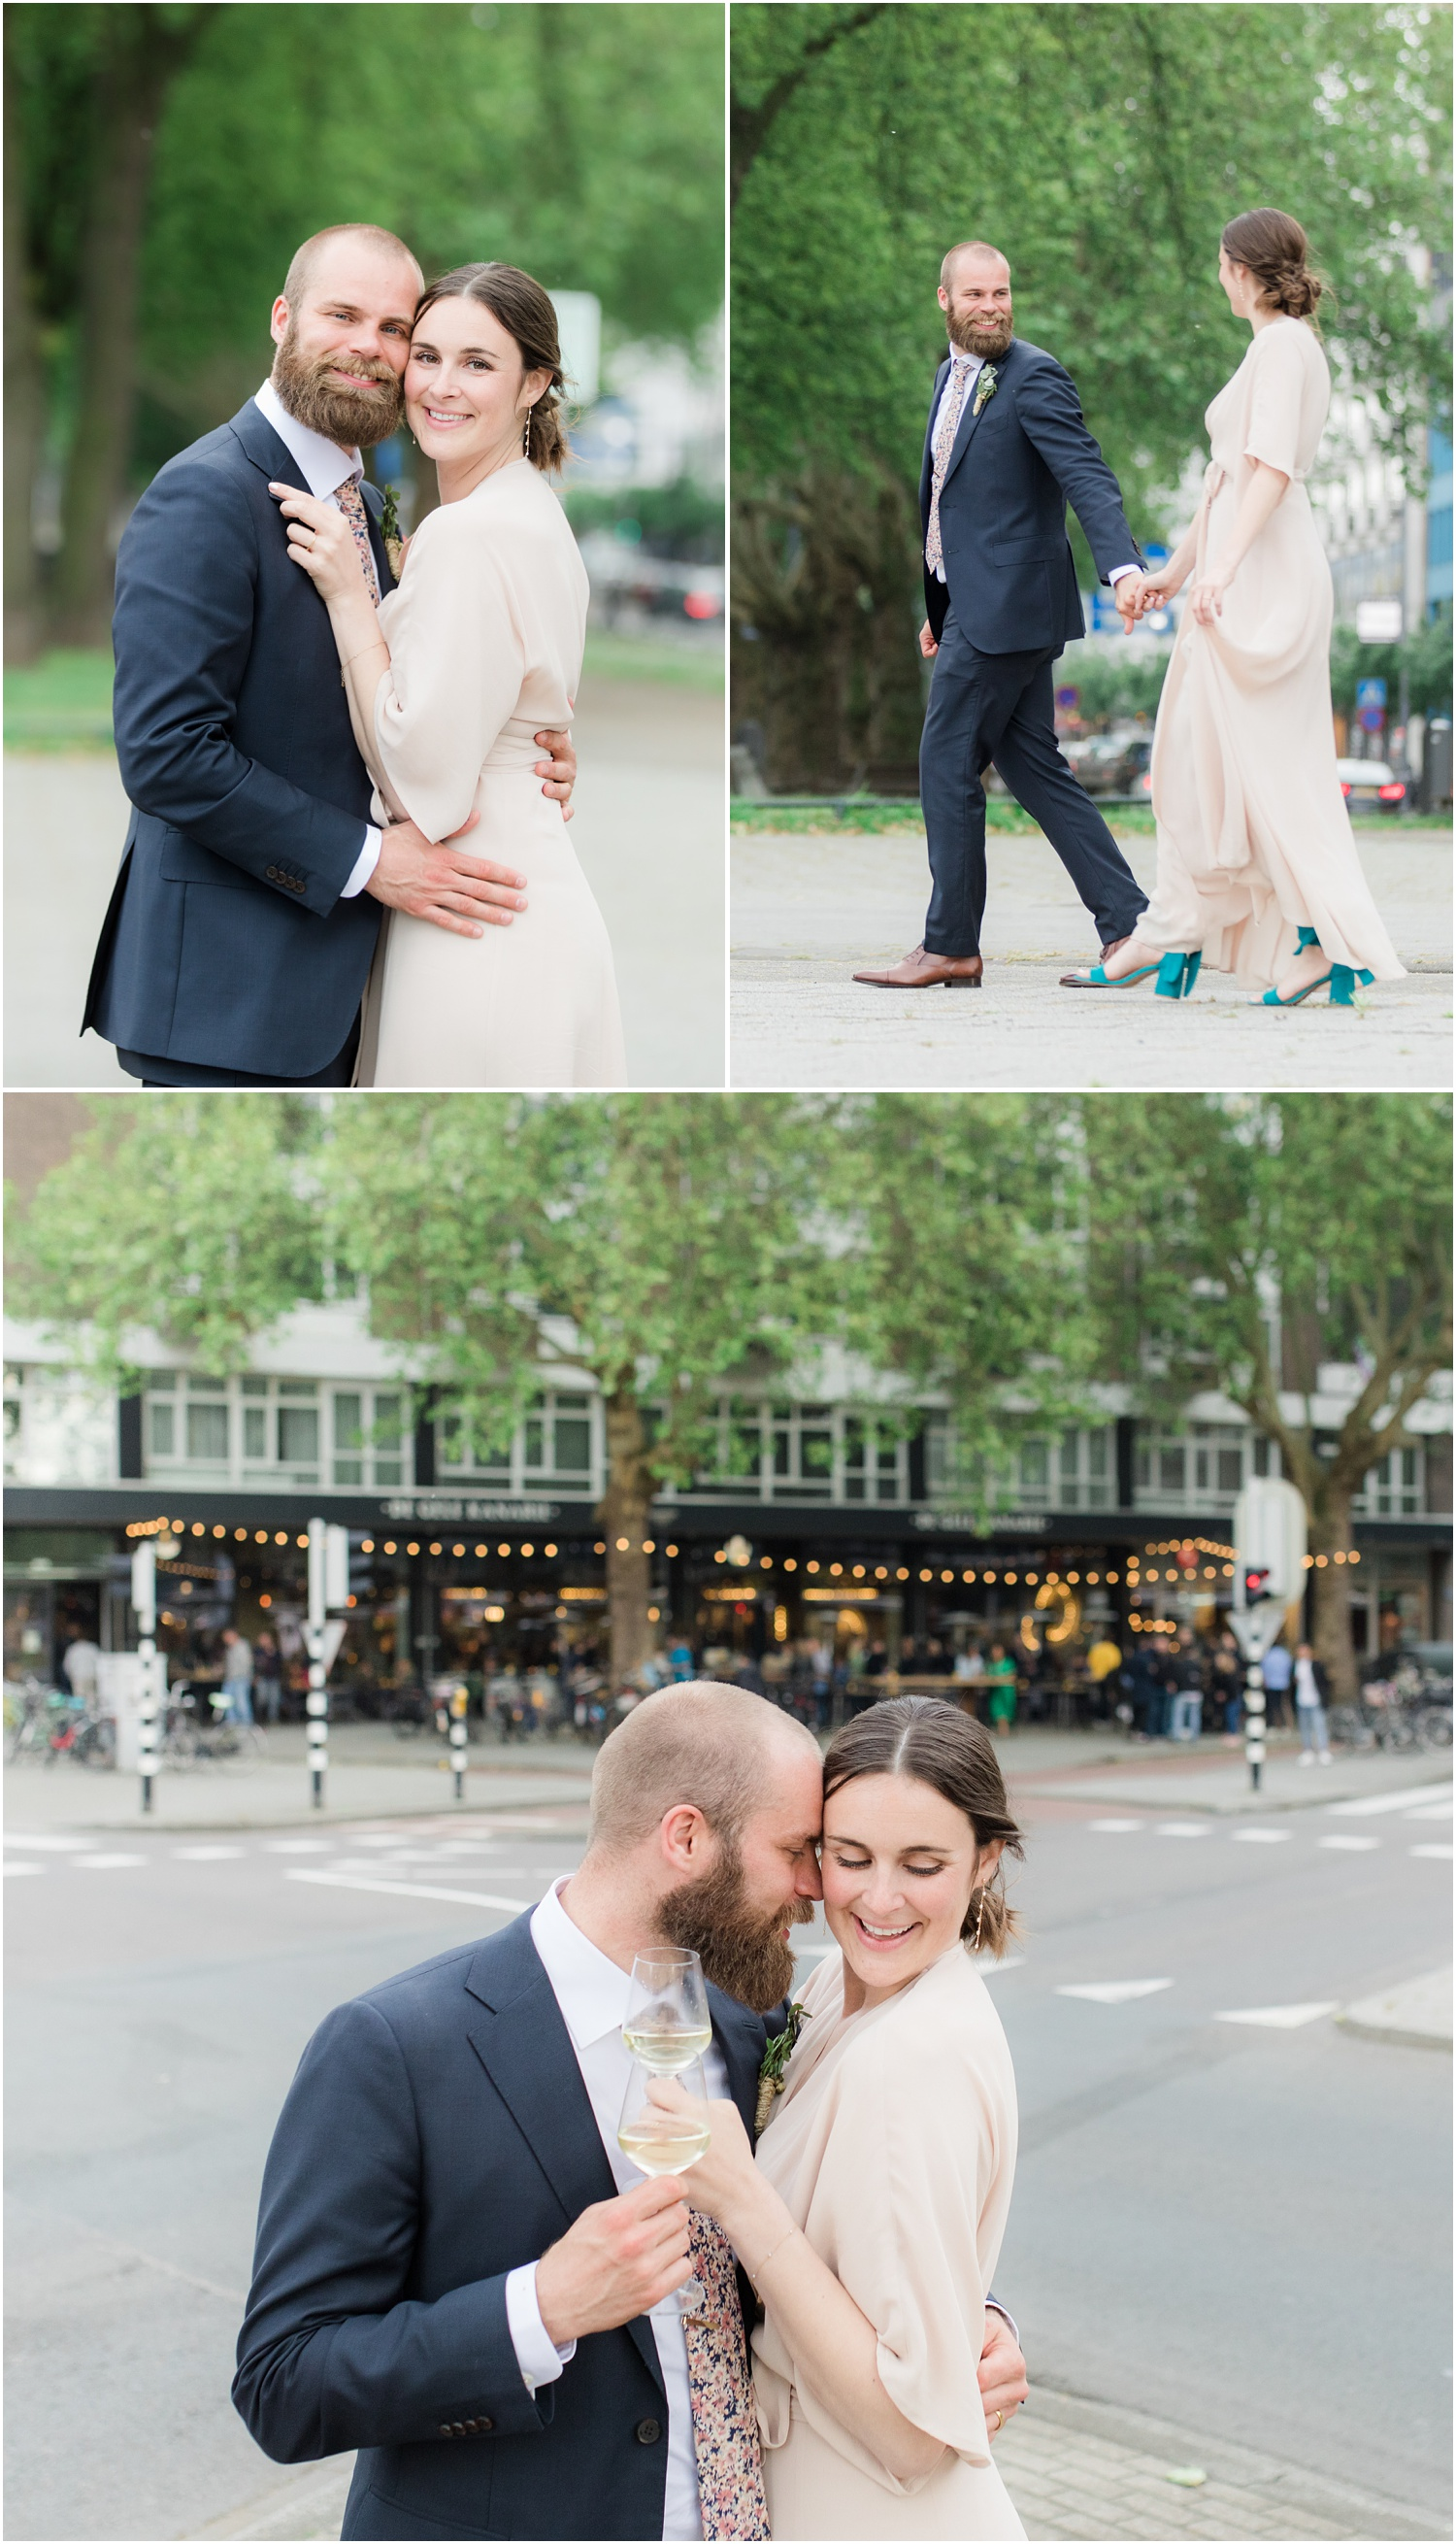 Romantic Wedding photos on the streets of Rotterdam